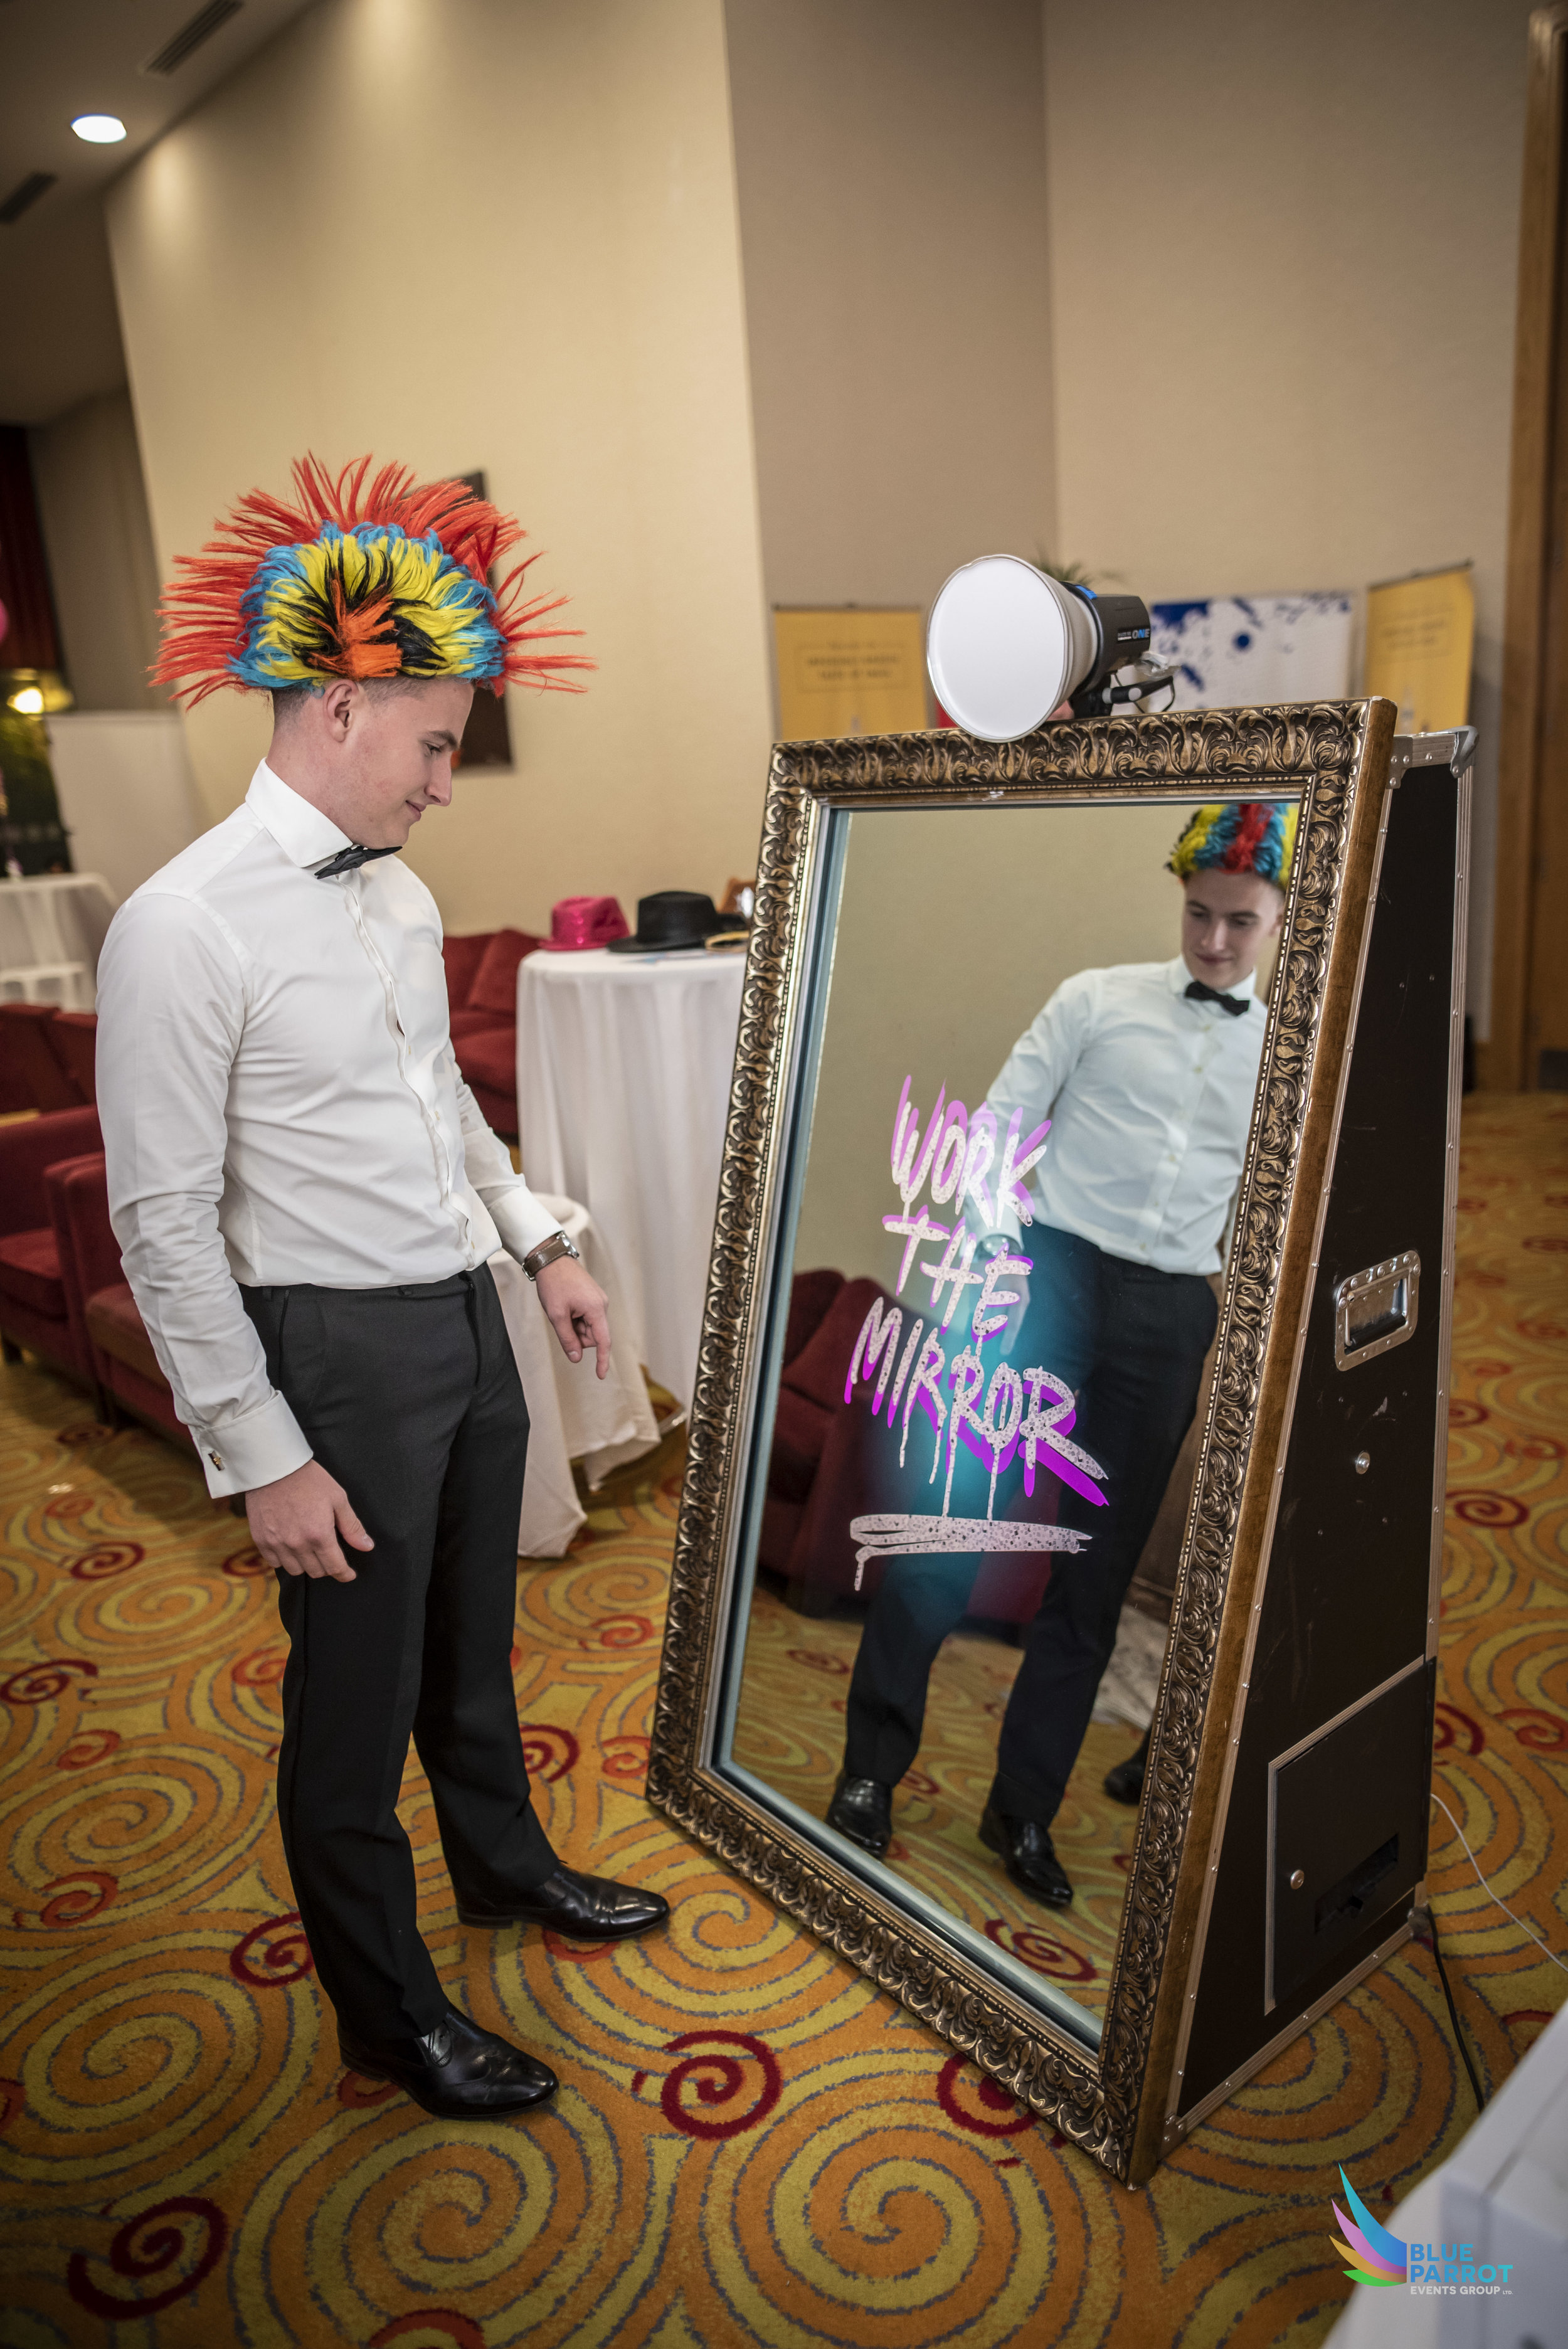 Mirror booth image.jpg